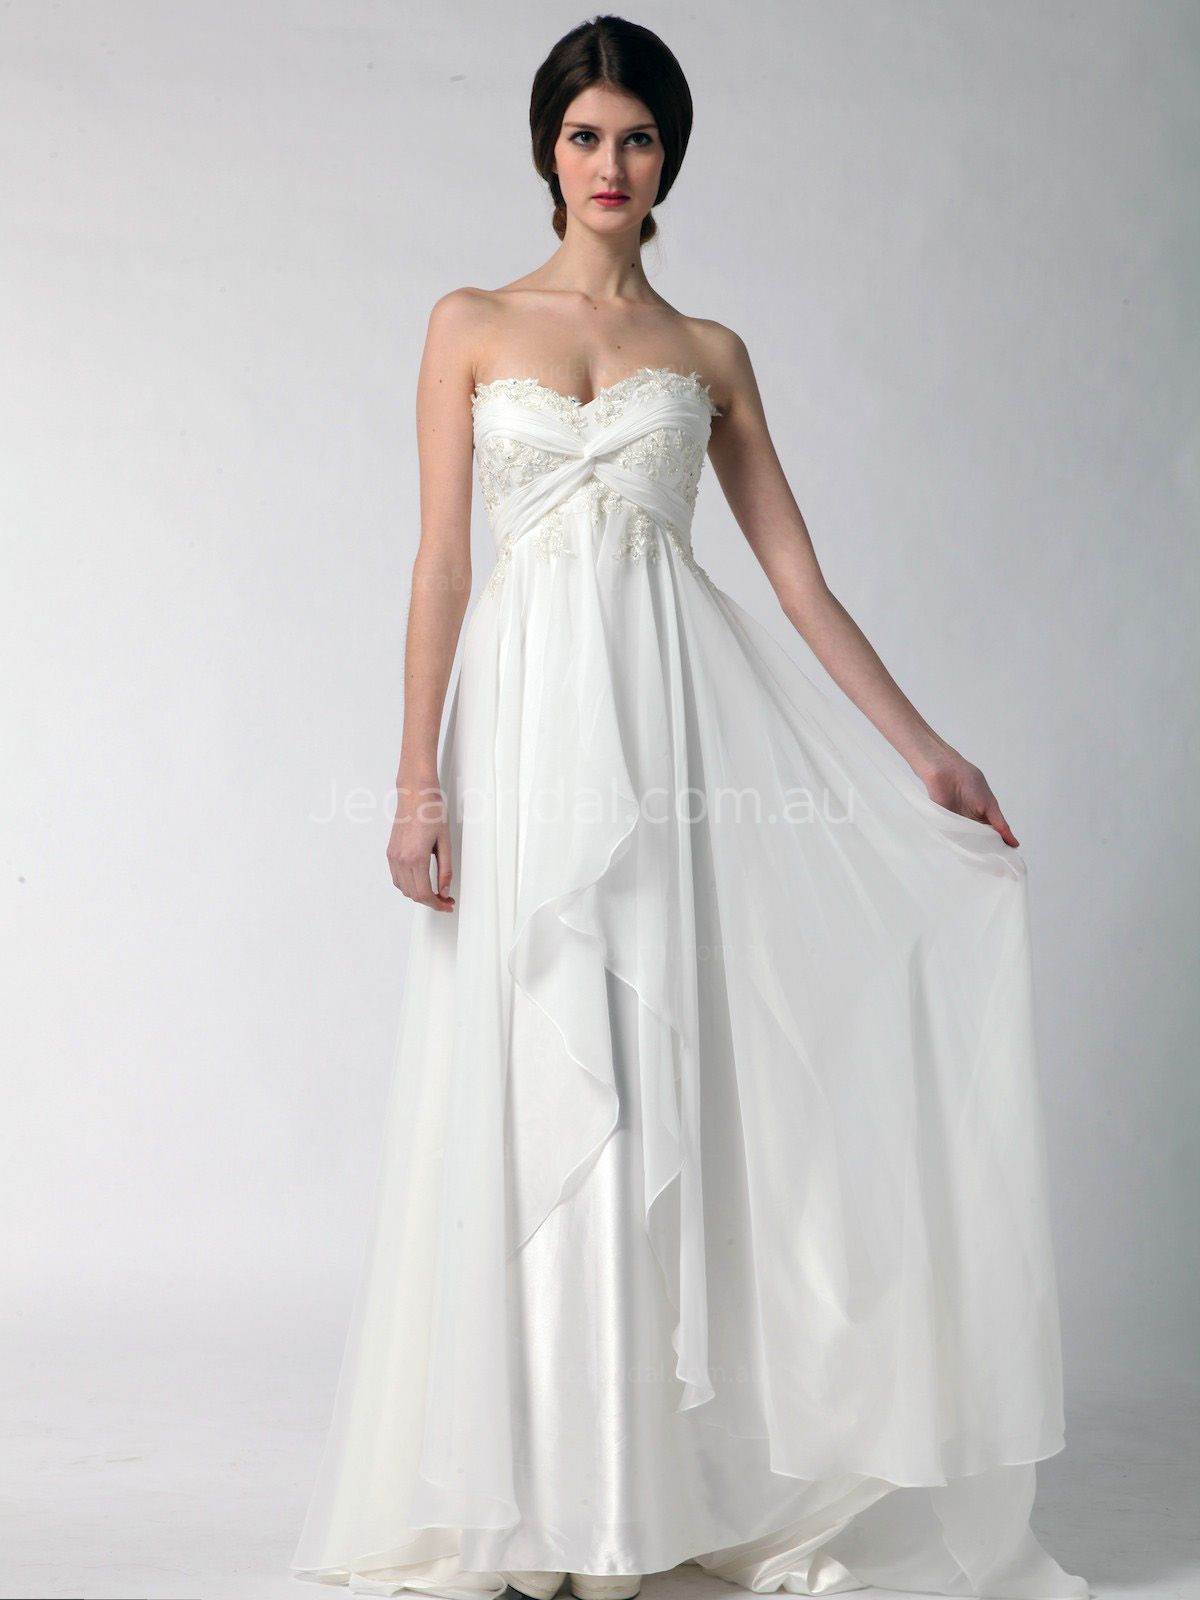 Grecian Goddess Wedding Dress - Stacey - Front | wedding dress ...